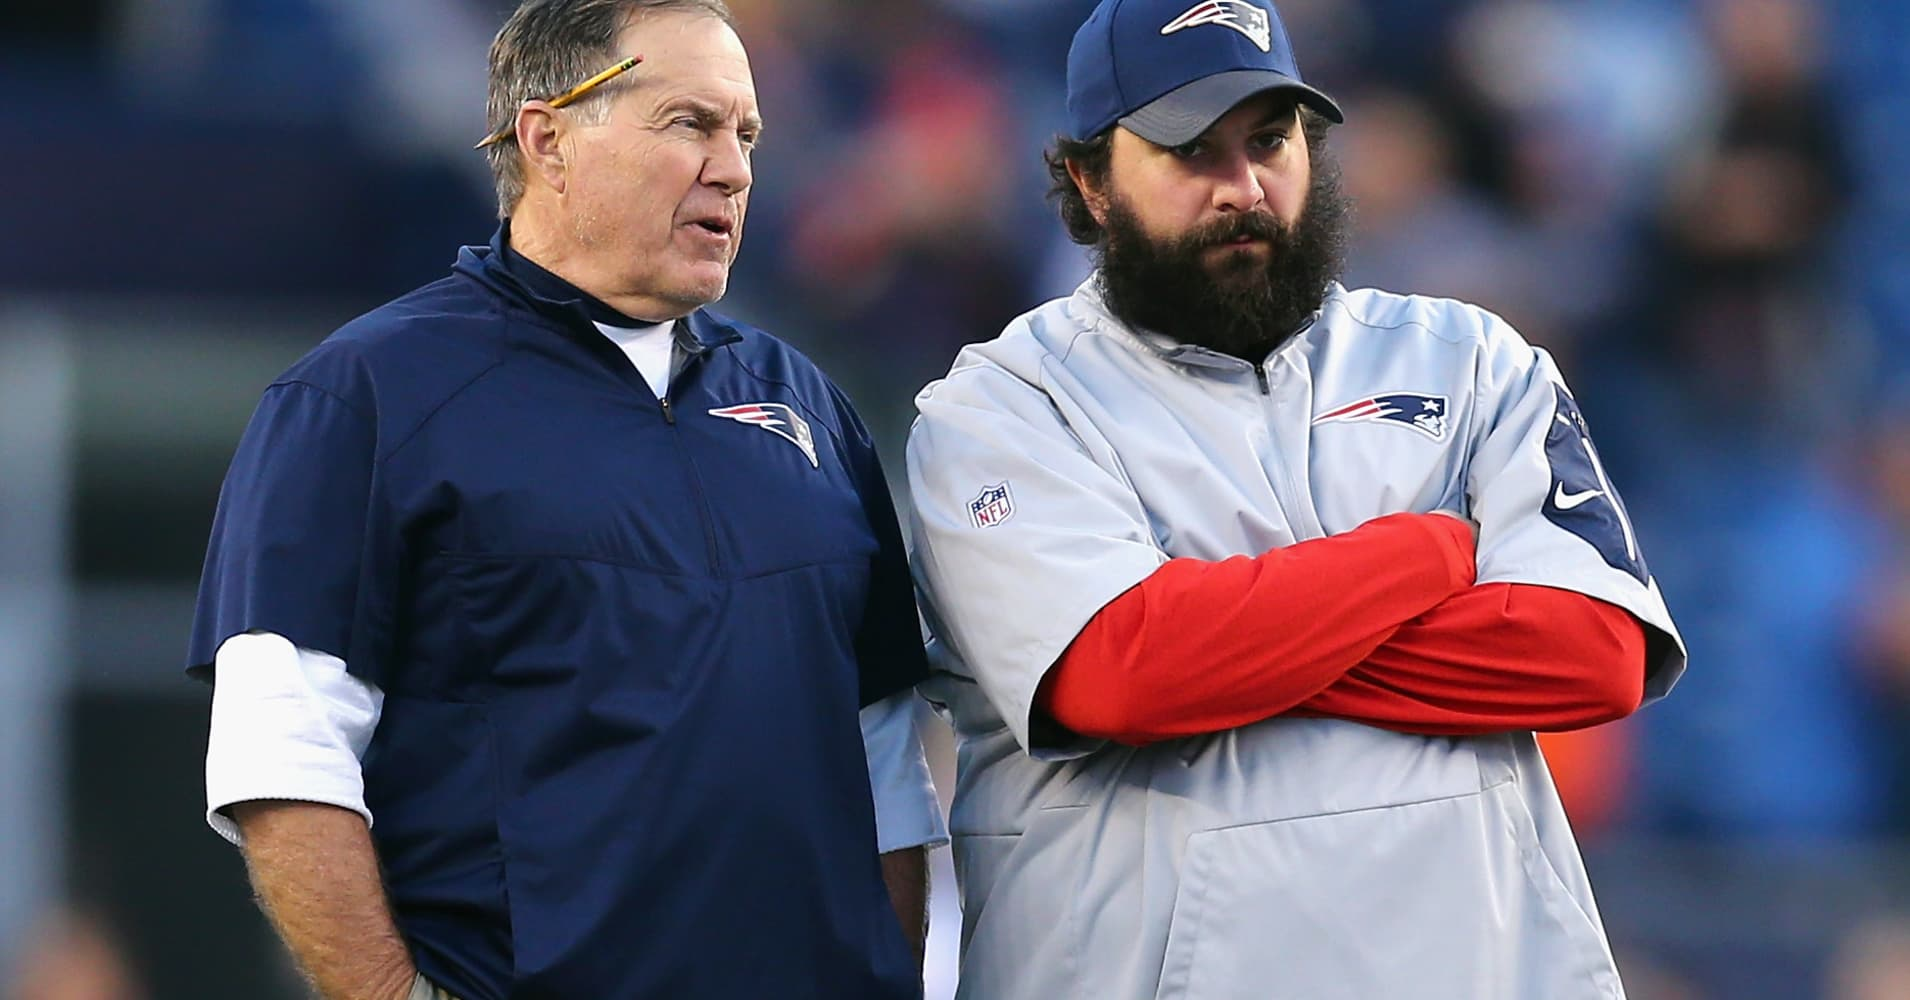 Patriots head coach Bill Belichick talks with defensive coordinator Matt Patricia.